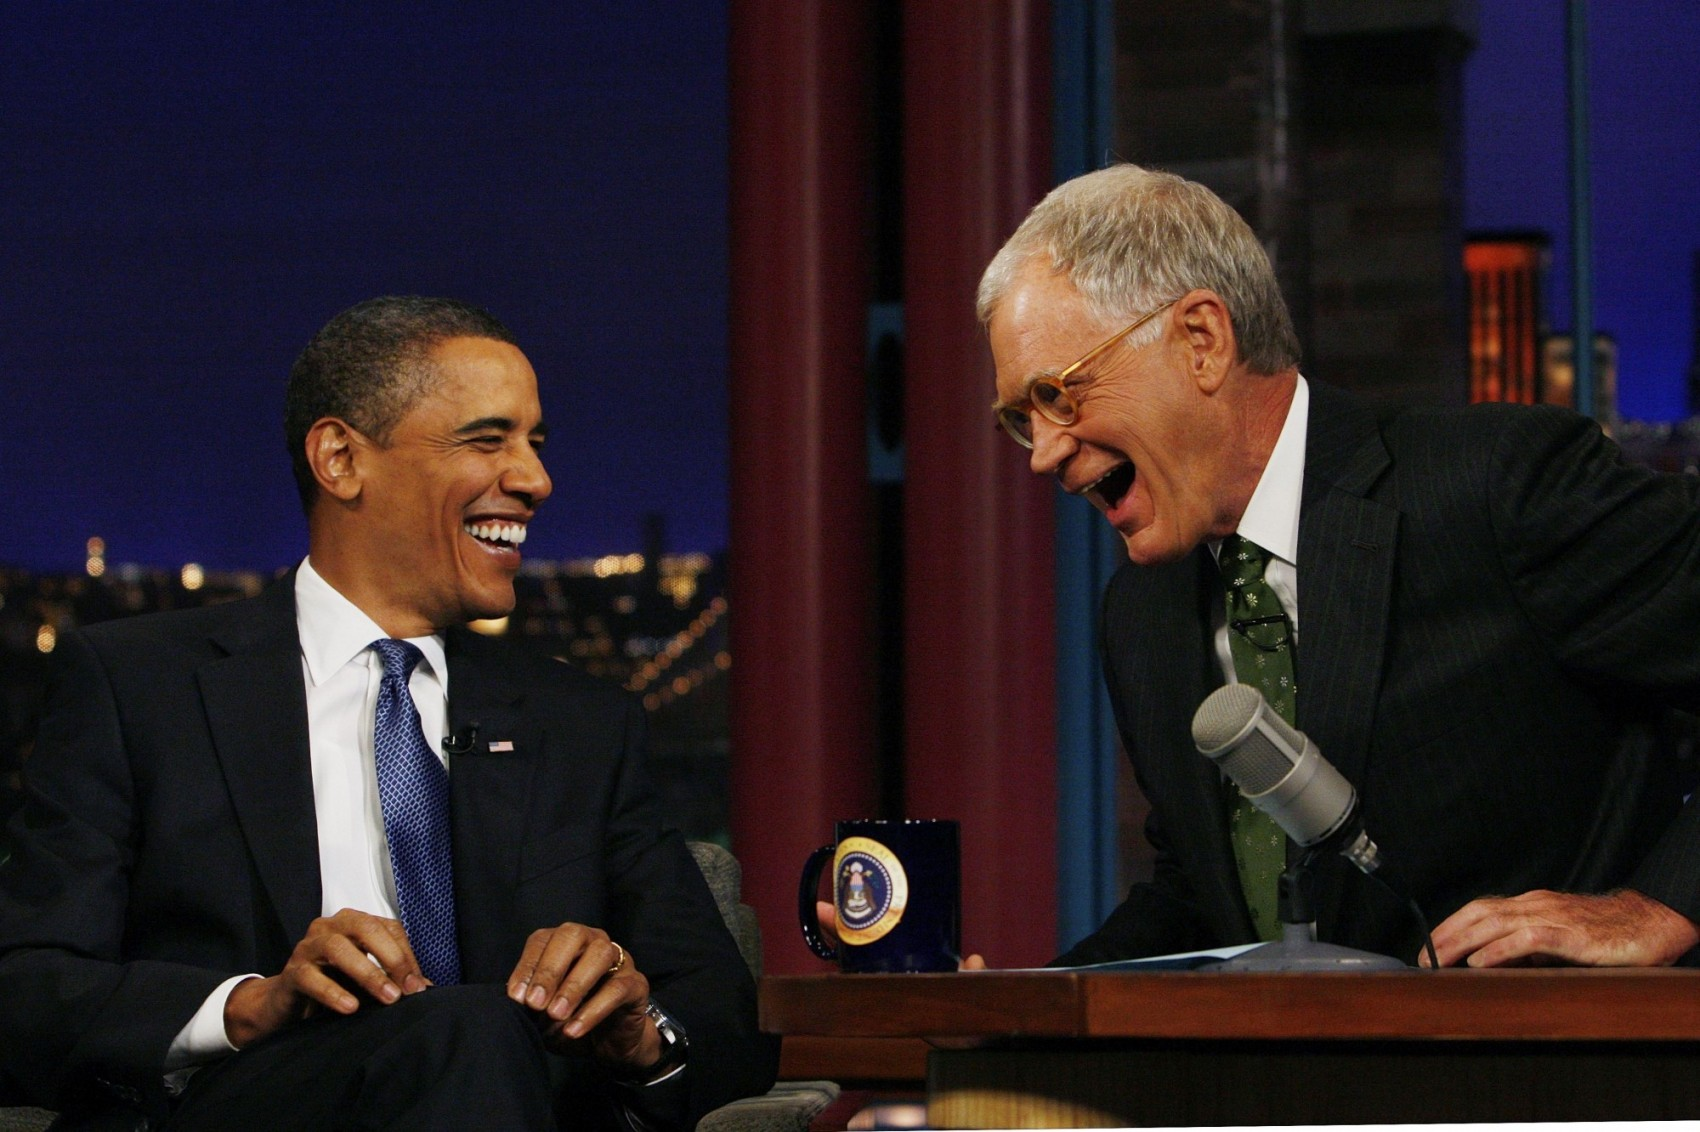 Image: Barack Obama, David Letterman